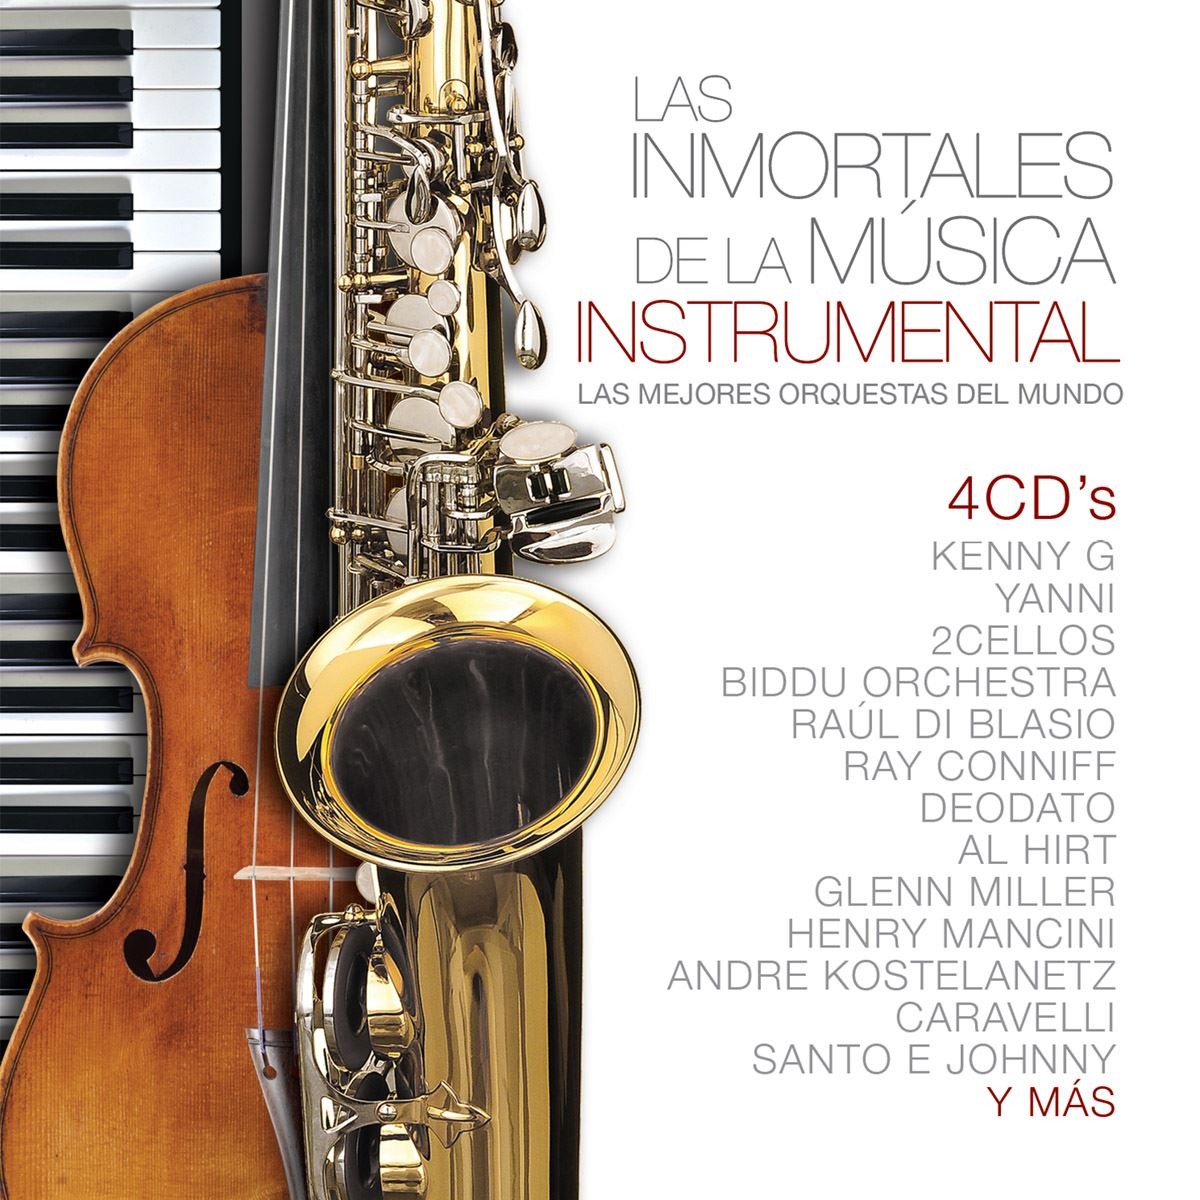 4cd las inmortales de la música instrumental  - Sanborns